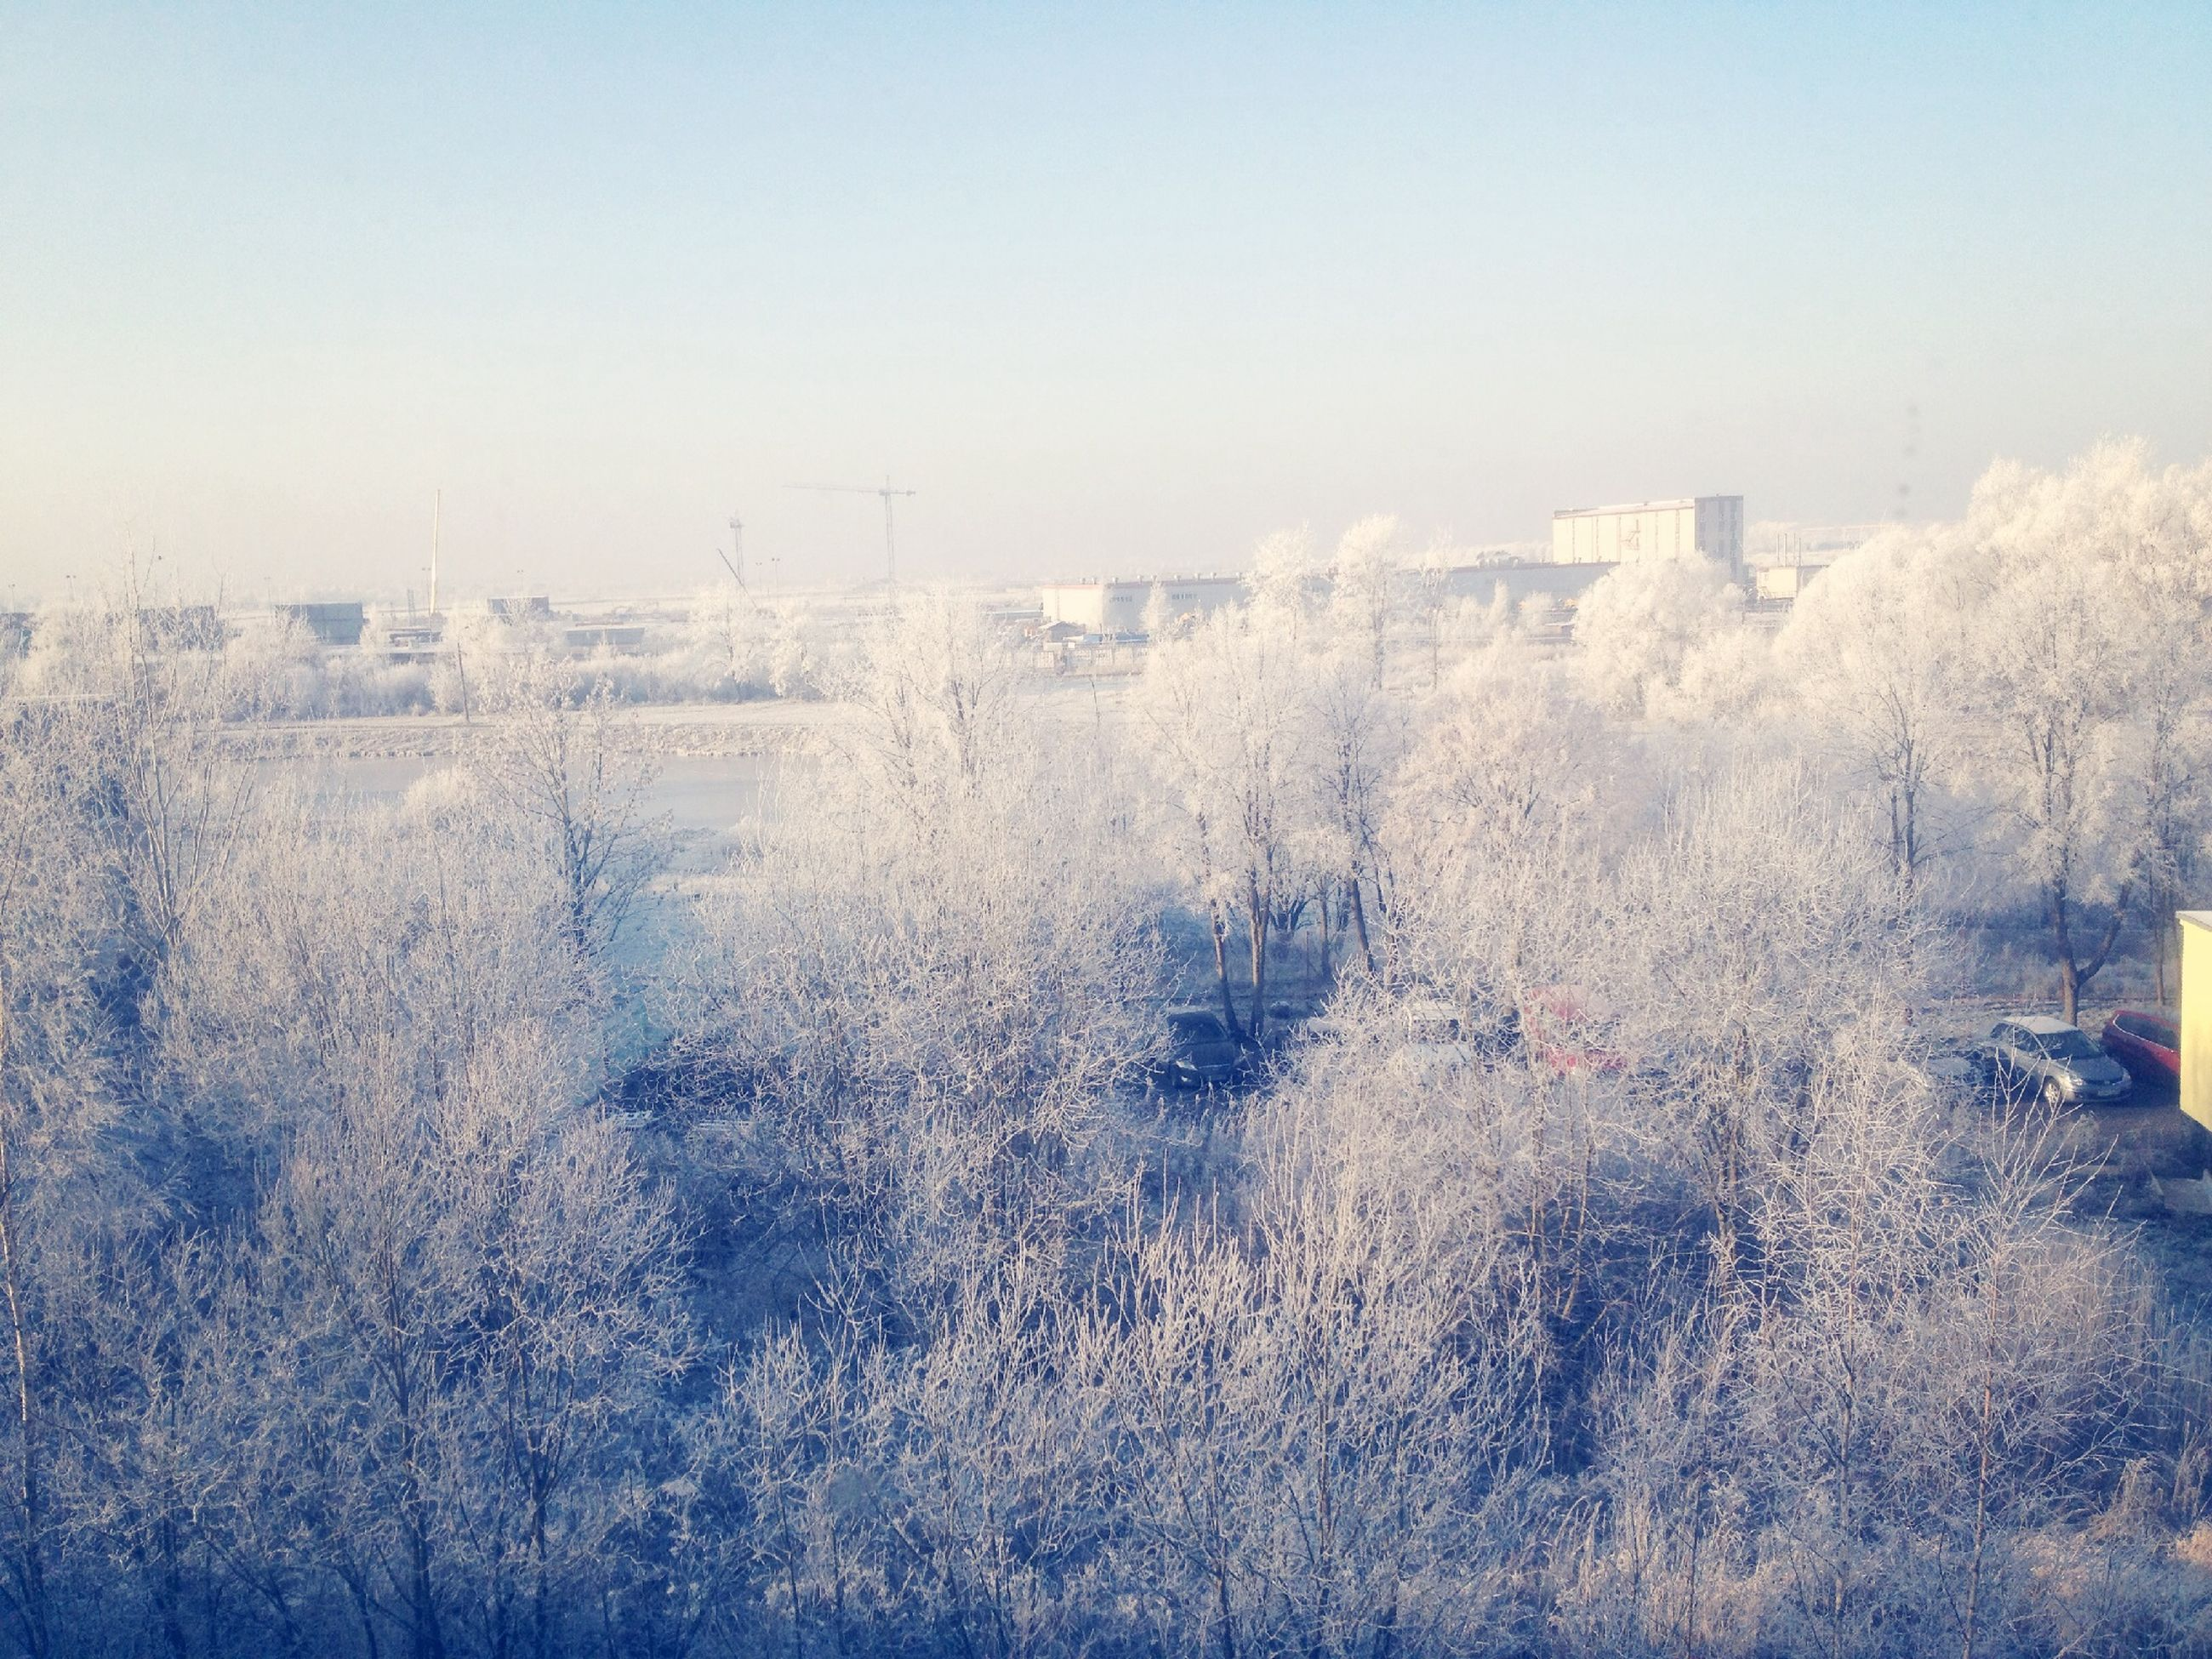 clear sky, building exterior, architecture, built structure, winter, cold temperature, copy space, snow, field, city, weather, season, tree, foggy, landscape, bare tree, day, nature, outdoors